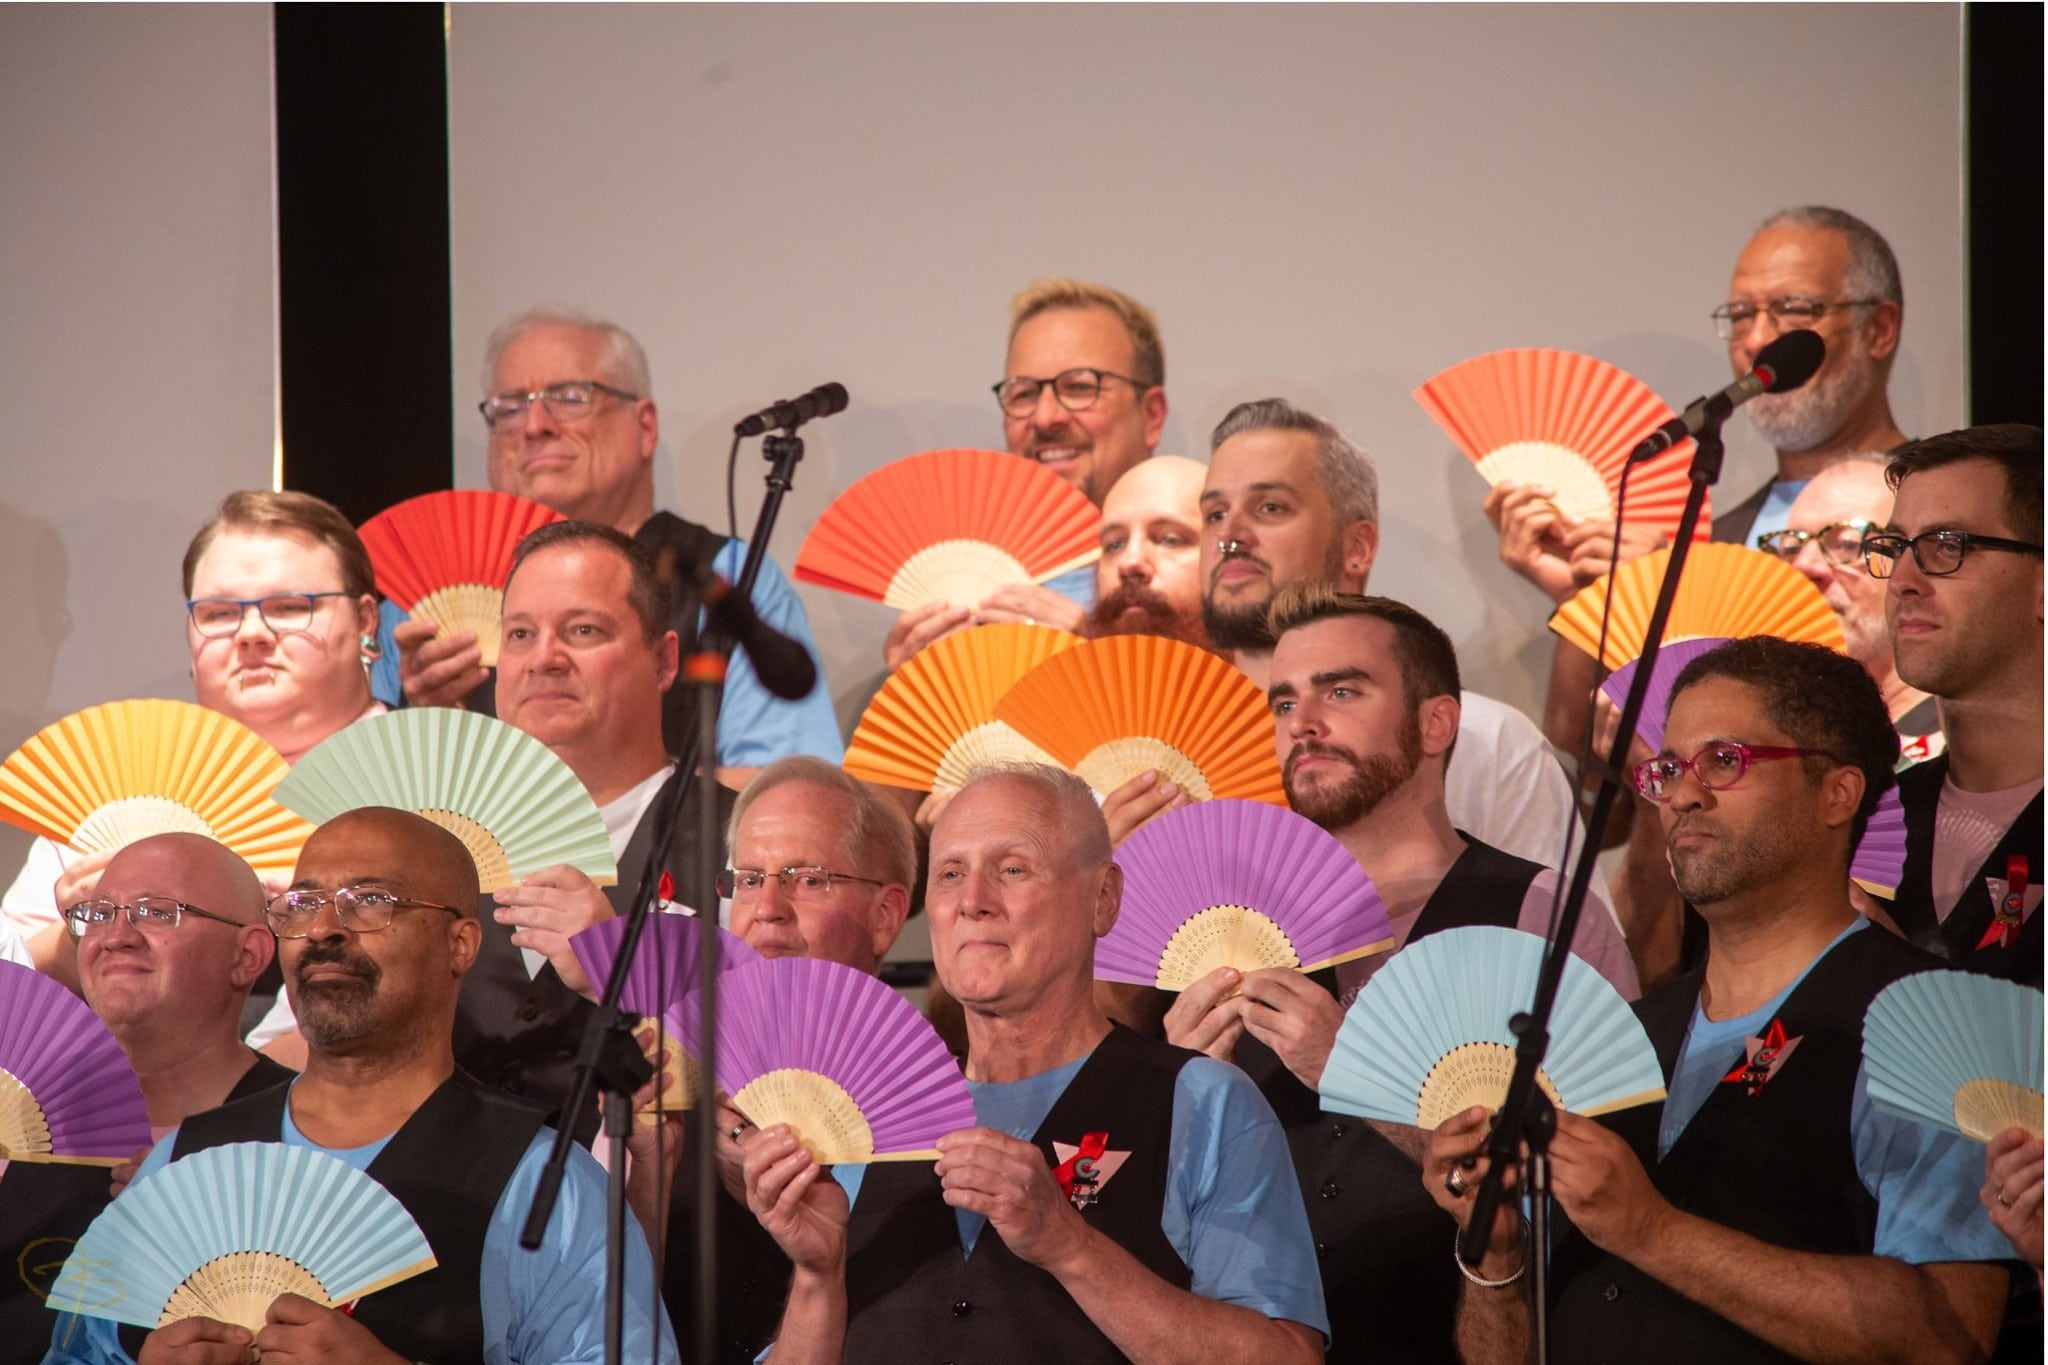 Image of members of the Cincinnati Men's Chorus, on stage, with multicolor paper fans